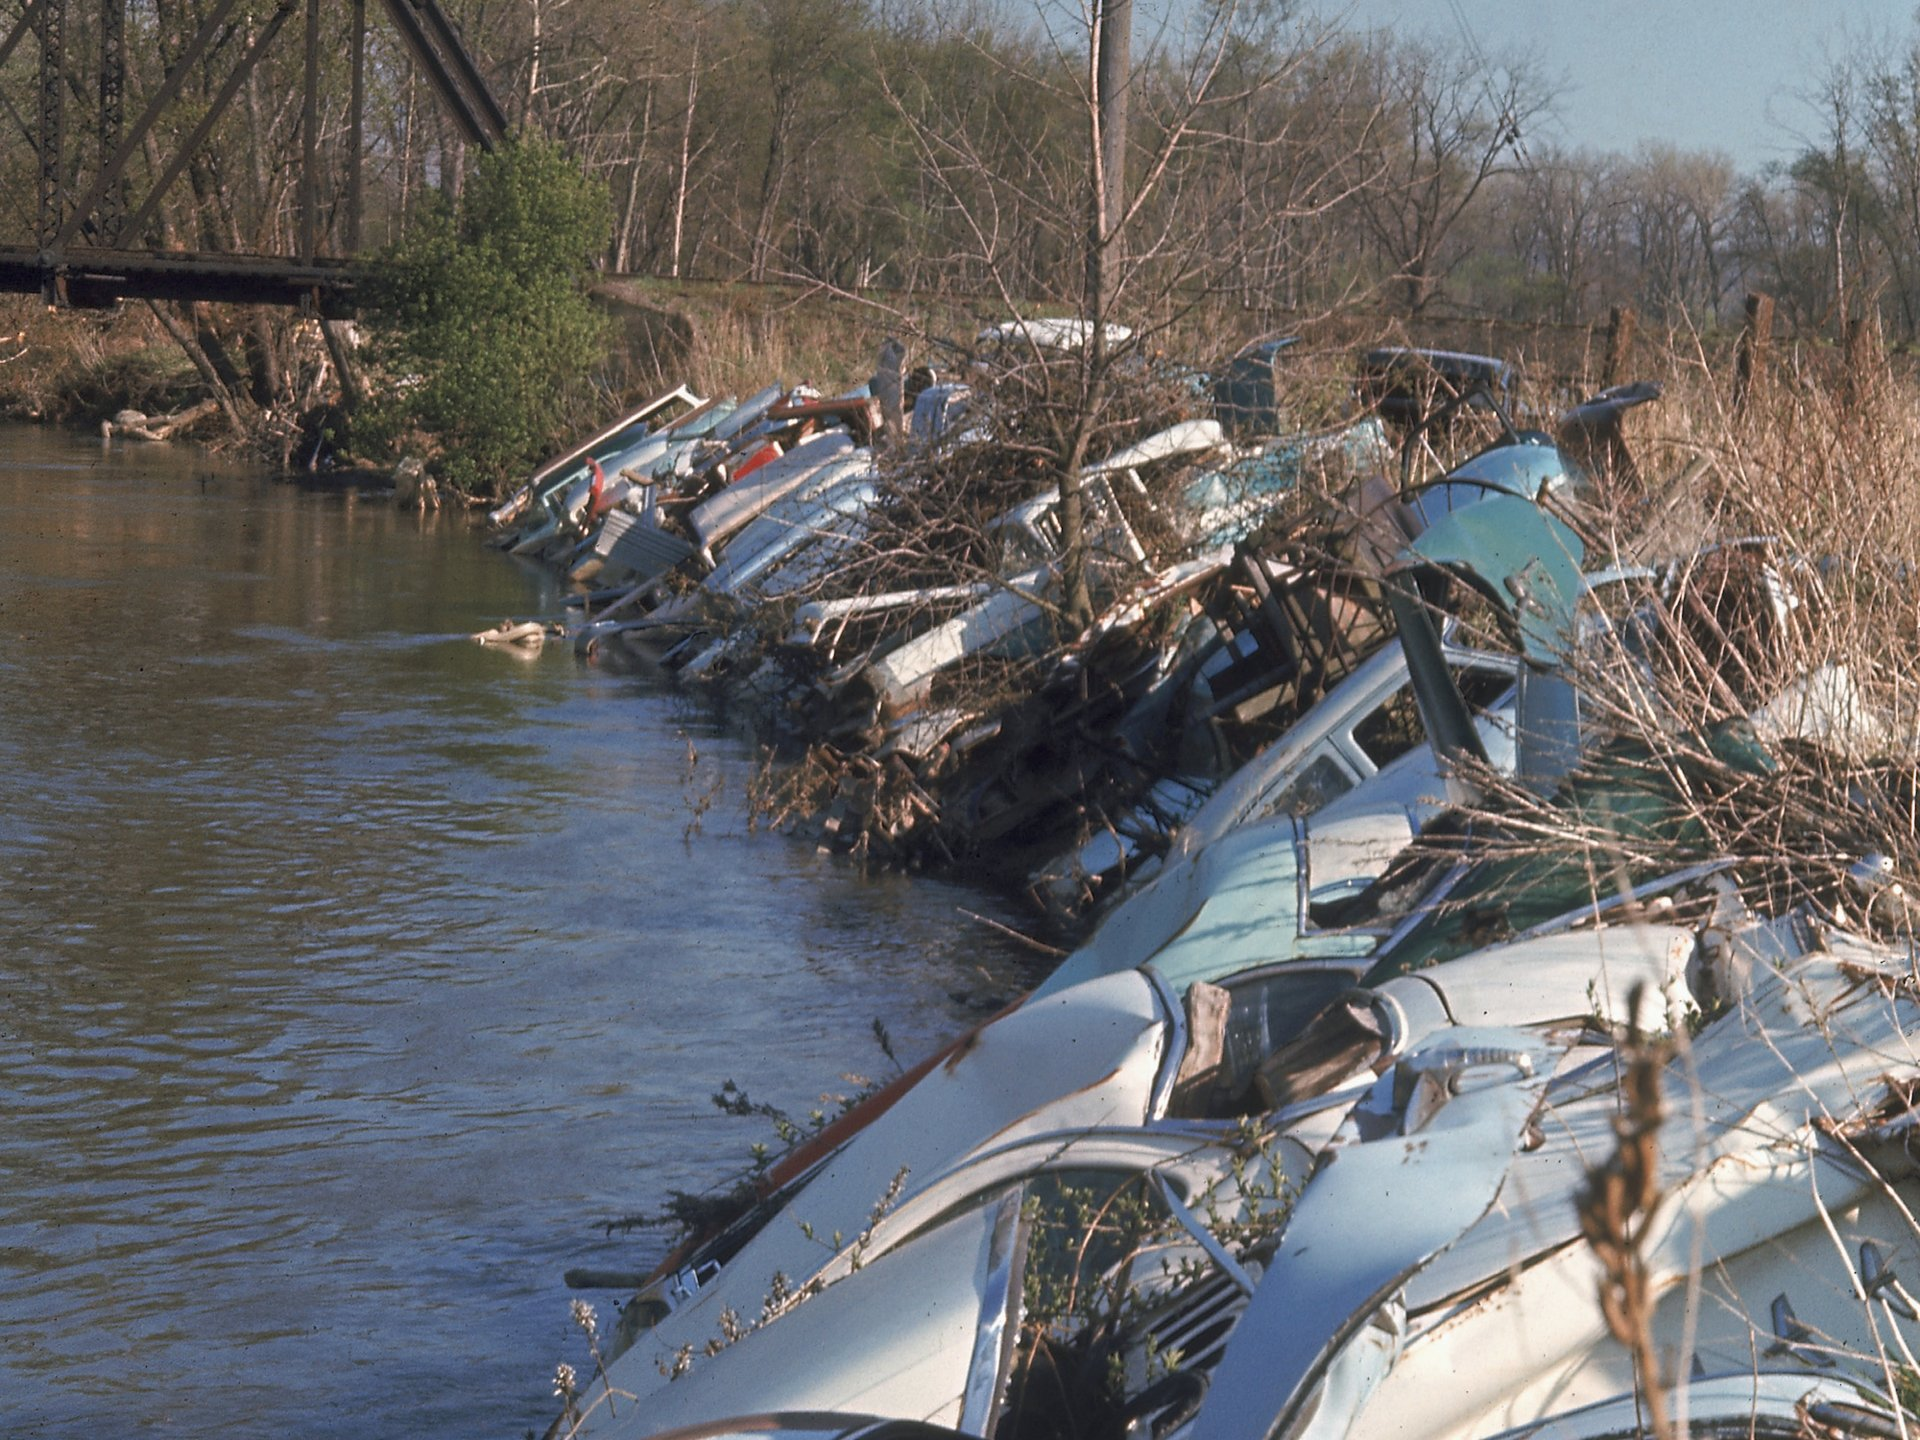 Vintage EPA photos reveal what US waterways looked like before pollution was regulated. The bank of a river is littered with old broken cars.